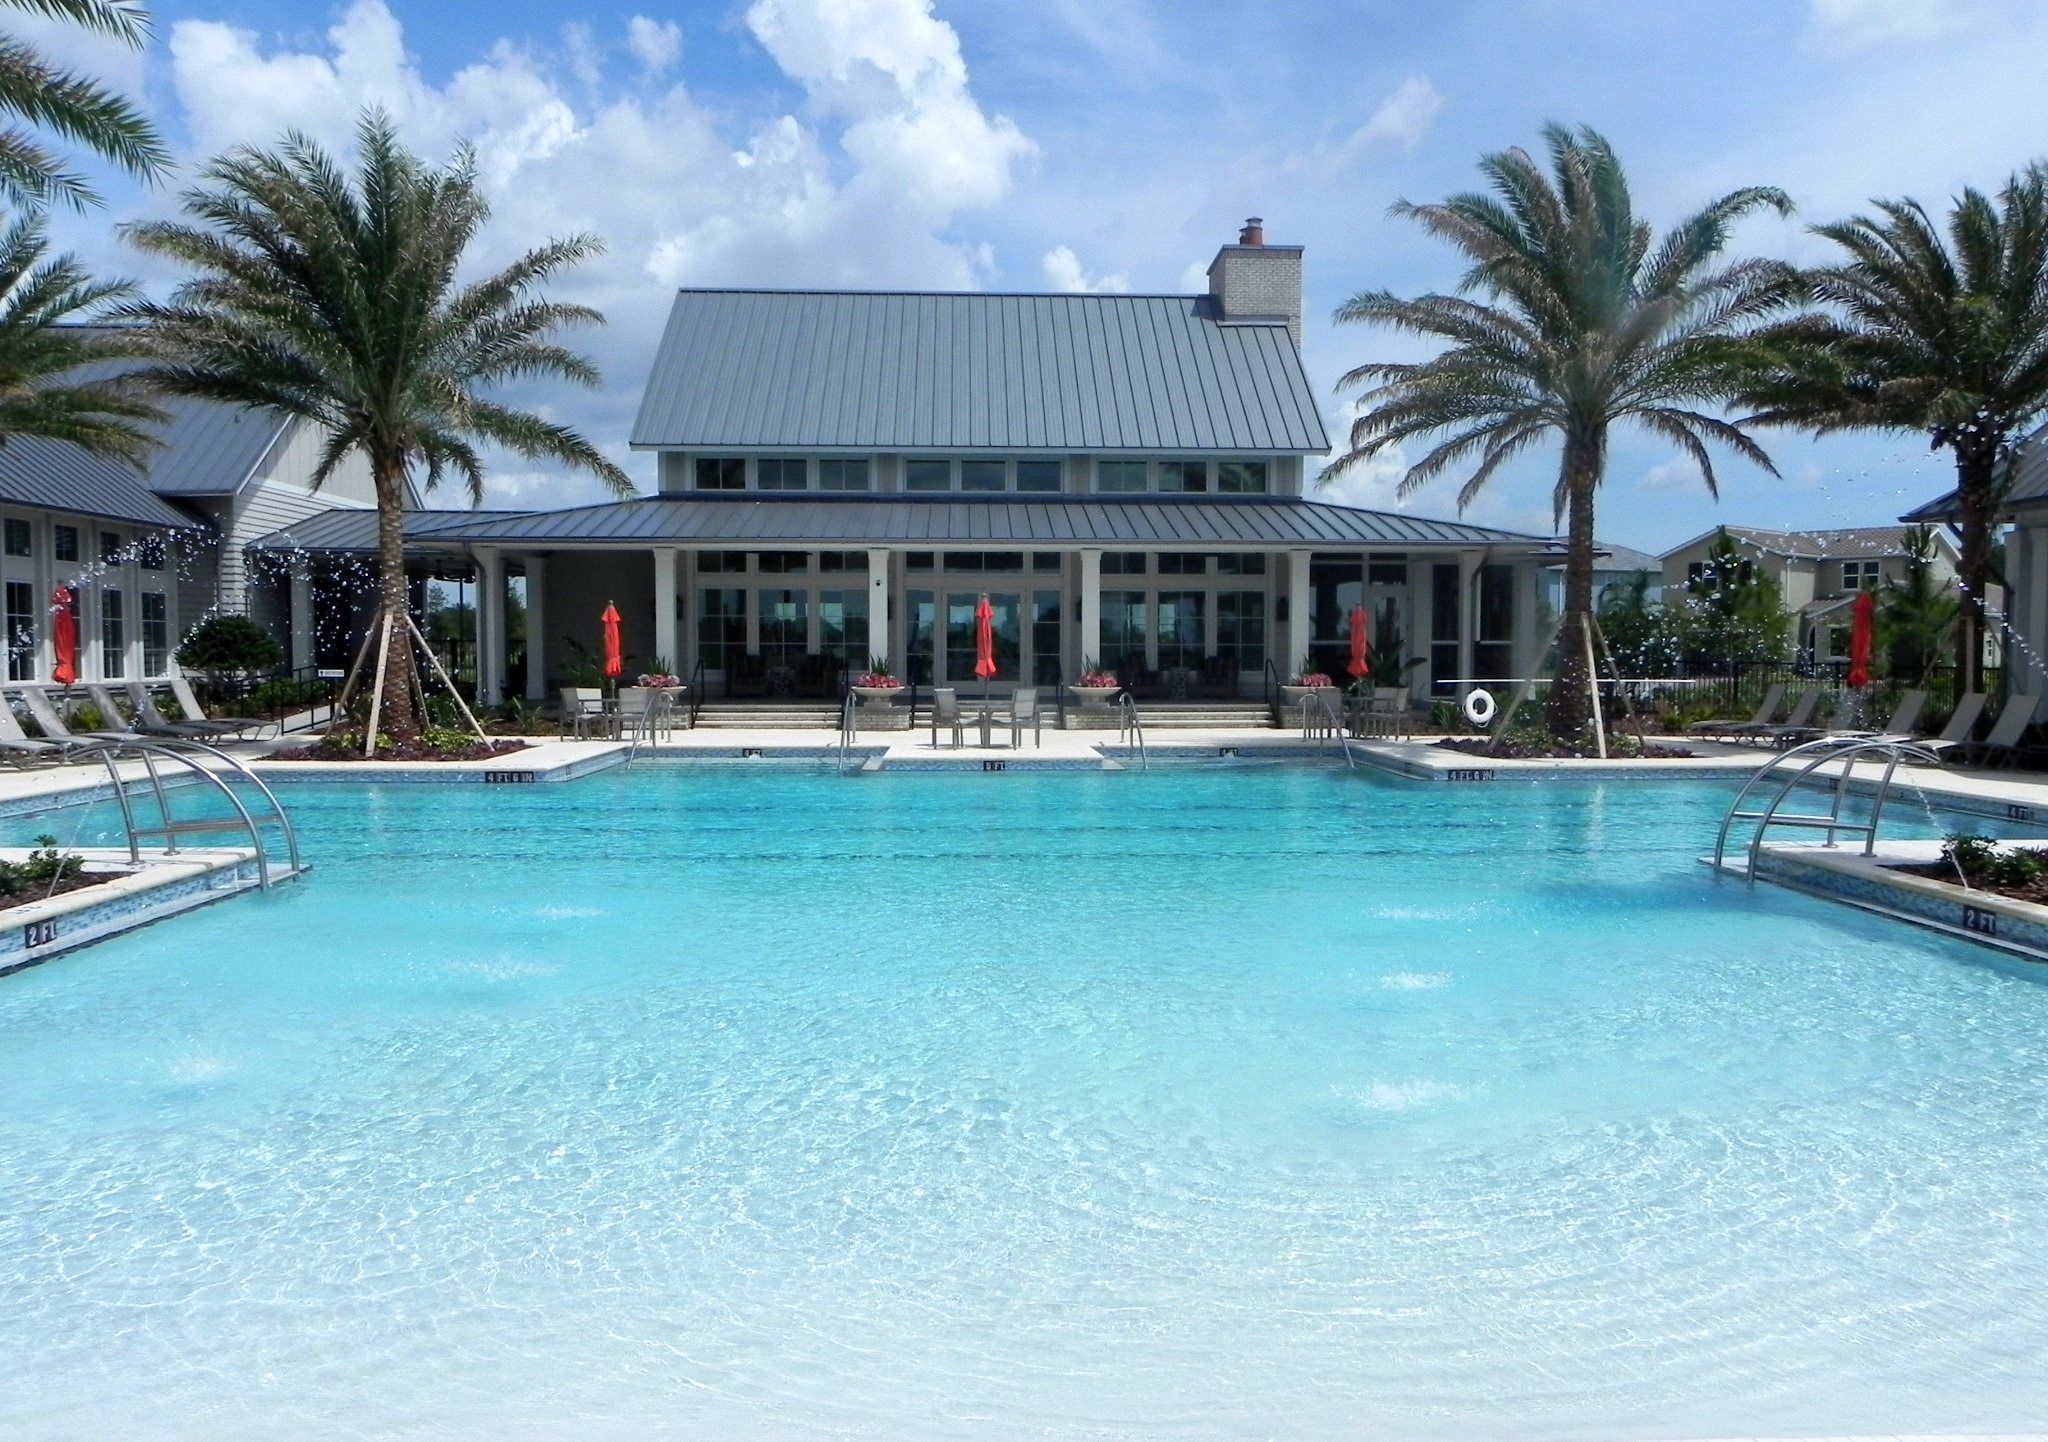 Arbor-Grande-Clubhouse-Ribbon-Cutting-pool-zero-entry.jpg